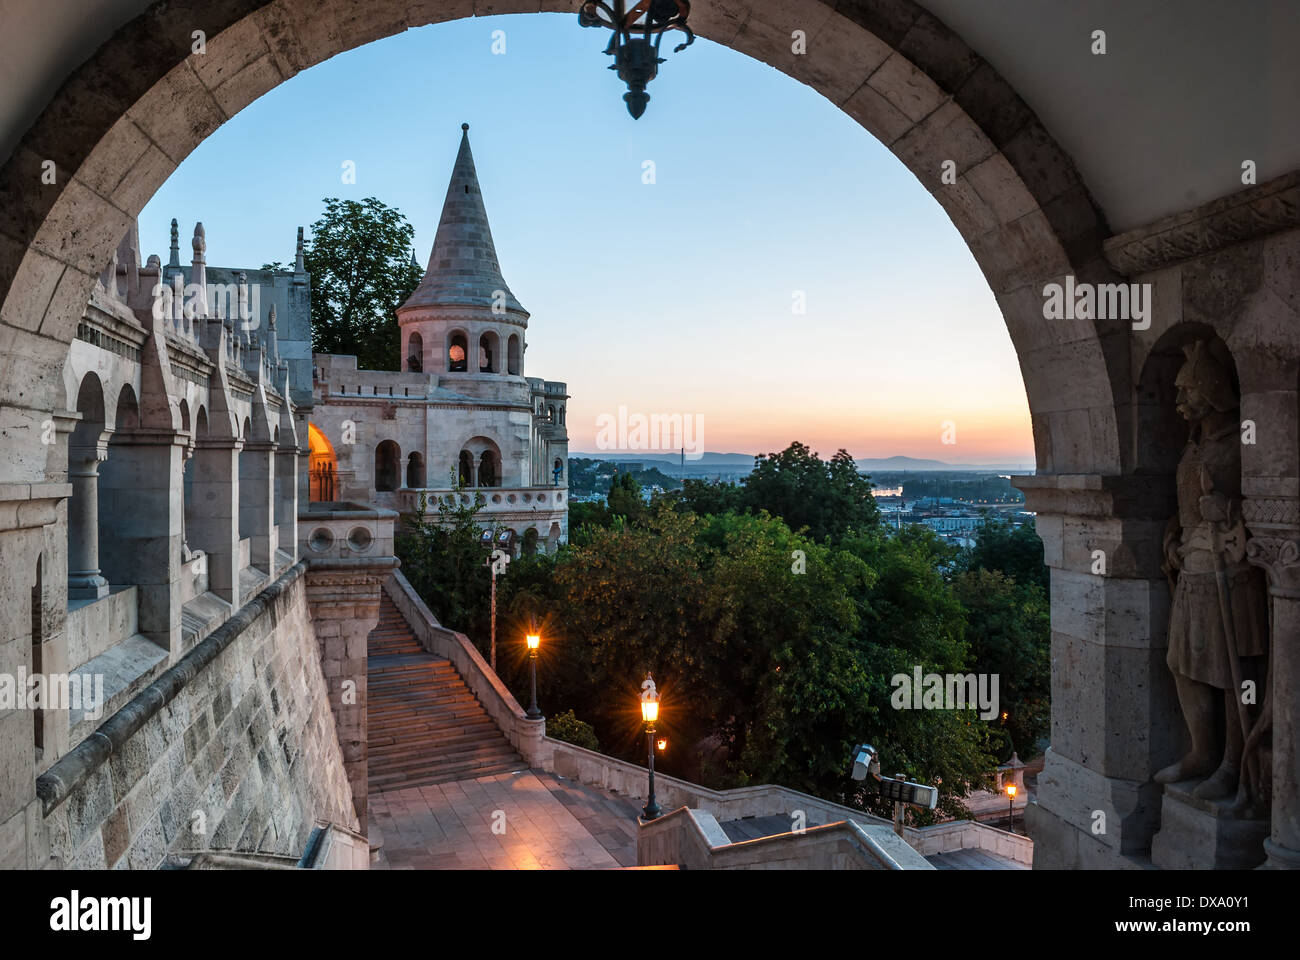 south gate of Fisherman's Bastion in Budapest at sunrise - Stock Image